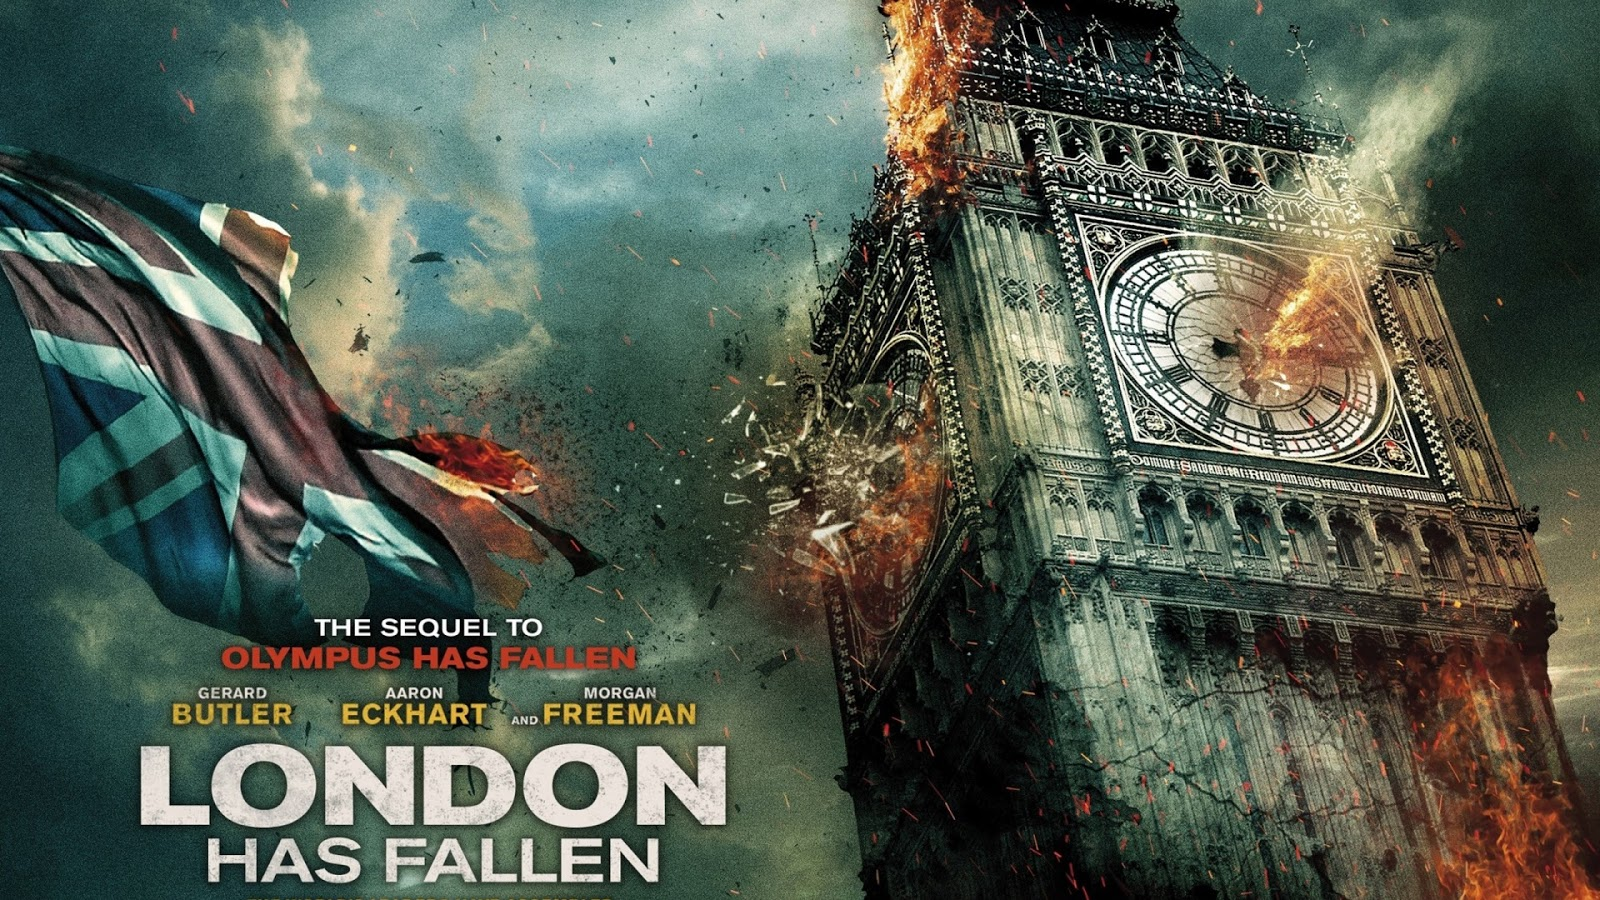 london 1920 full movie free download | hd free movie download